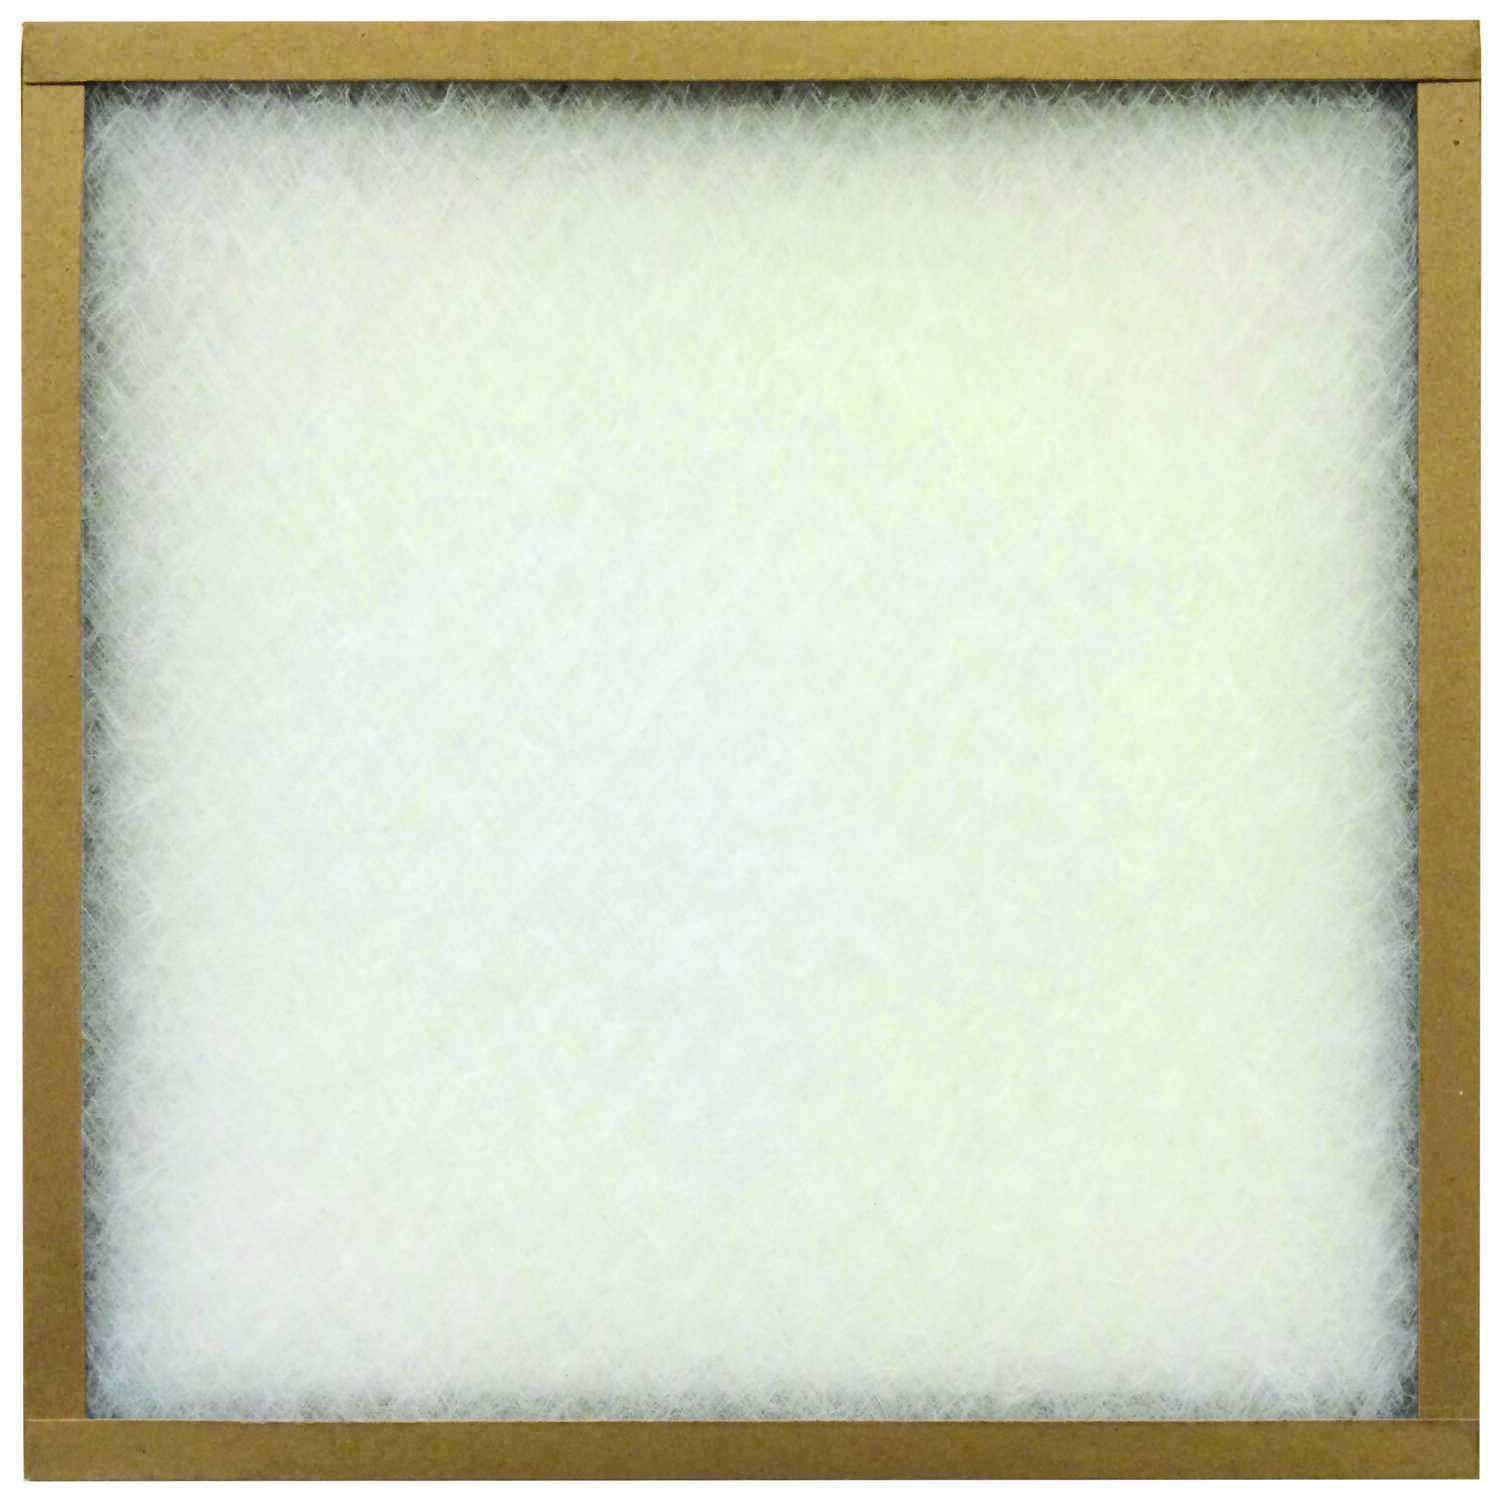 AAF Flanders  18 in. W x 18 in. H x 1 in. D Fiberglass  Air Filter